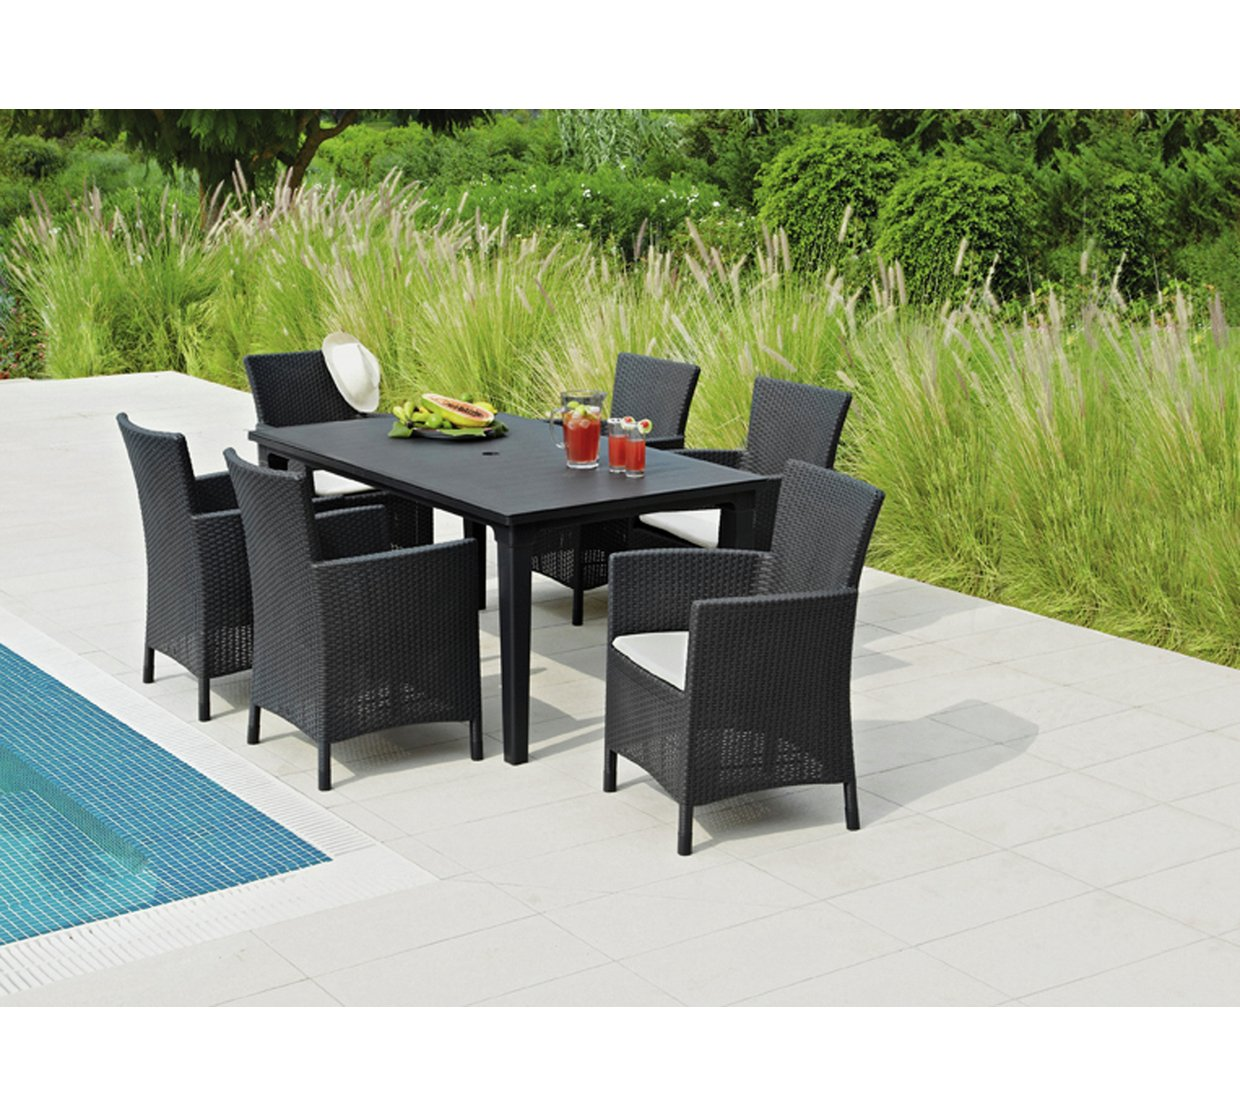 http   media 4rgos it i Argos 3239964 R Z007A. Keter Iowa Rattan style 6 seater garden furniture dining set in